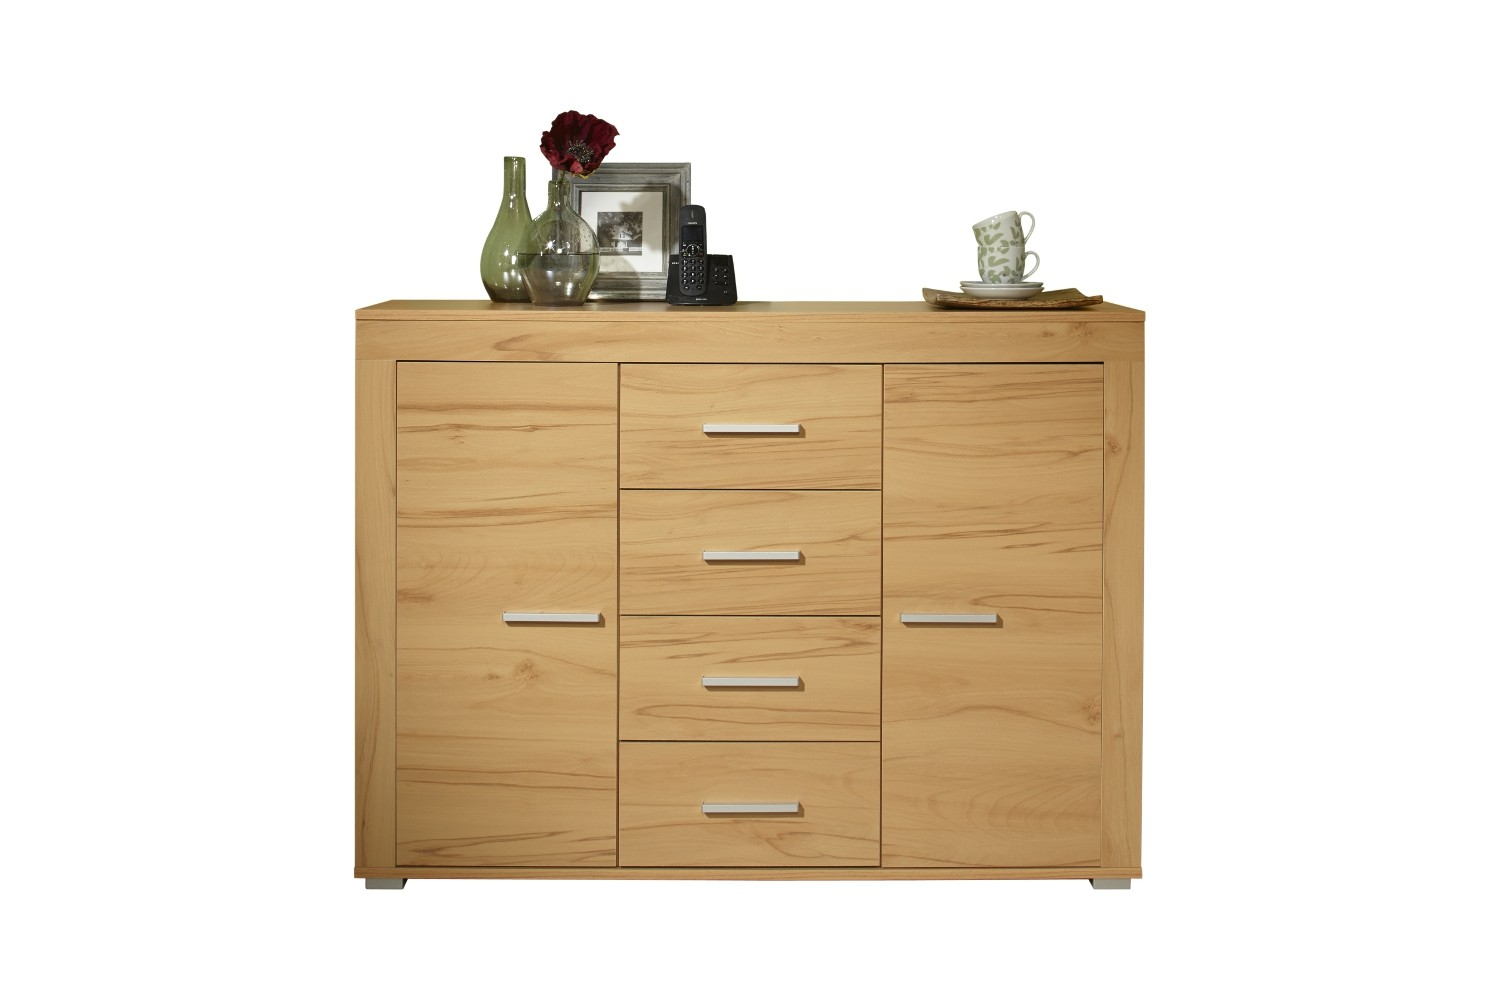 sideboard aosta 120 cm breit 2 t ren 4 schubladen. Black Bedroom Furniture Sets. Home Design Ideas